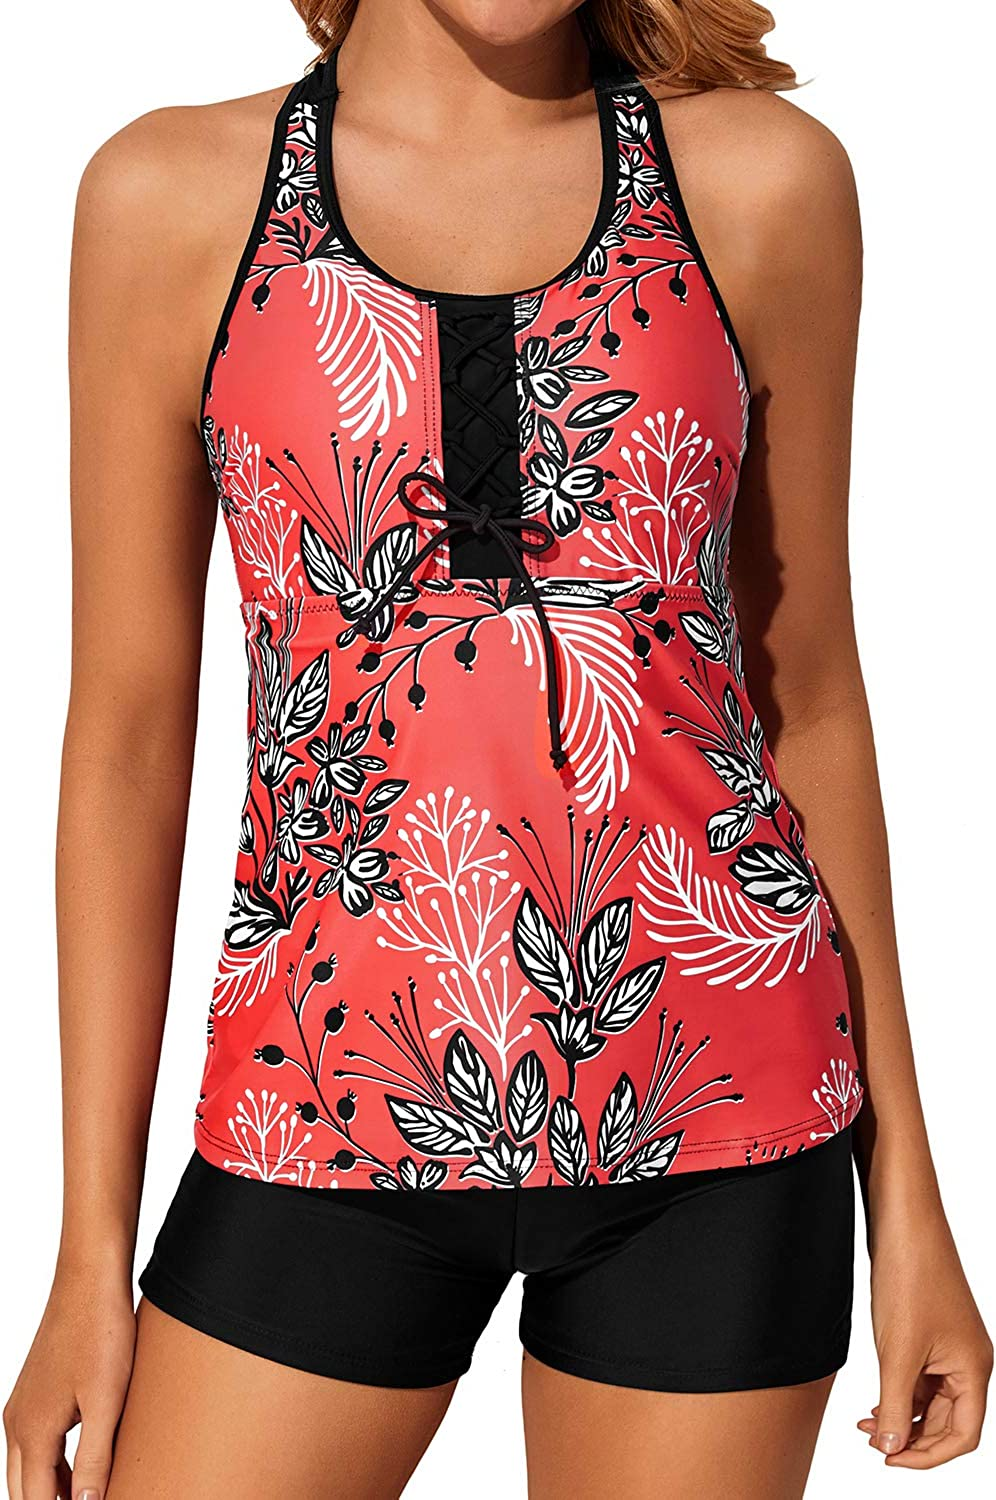 Holipick Racerback Tankini Swimsuits for Women with Shorts Tummy Control Two Piece Bathing Suits Athletic Swim Tank Top